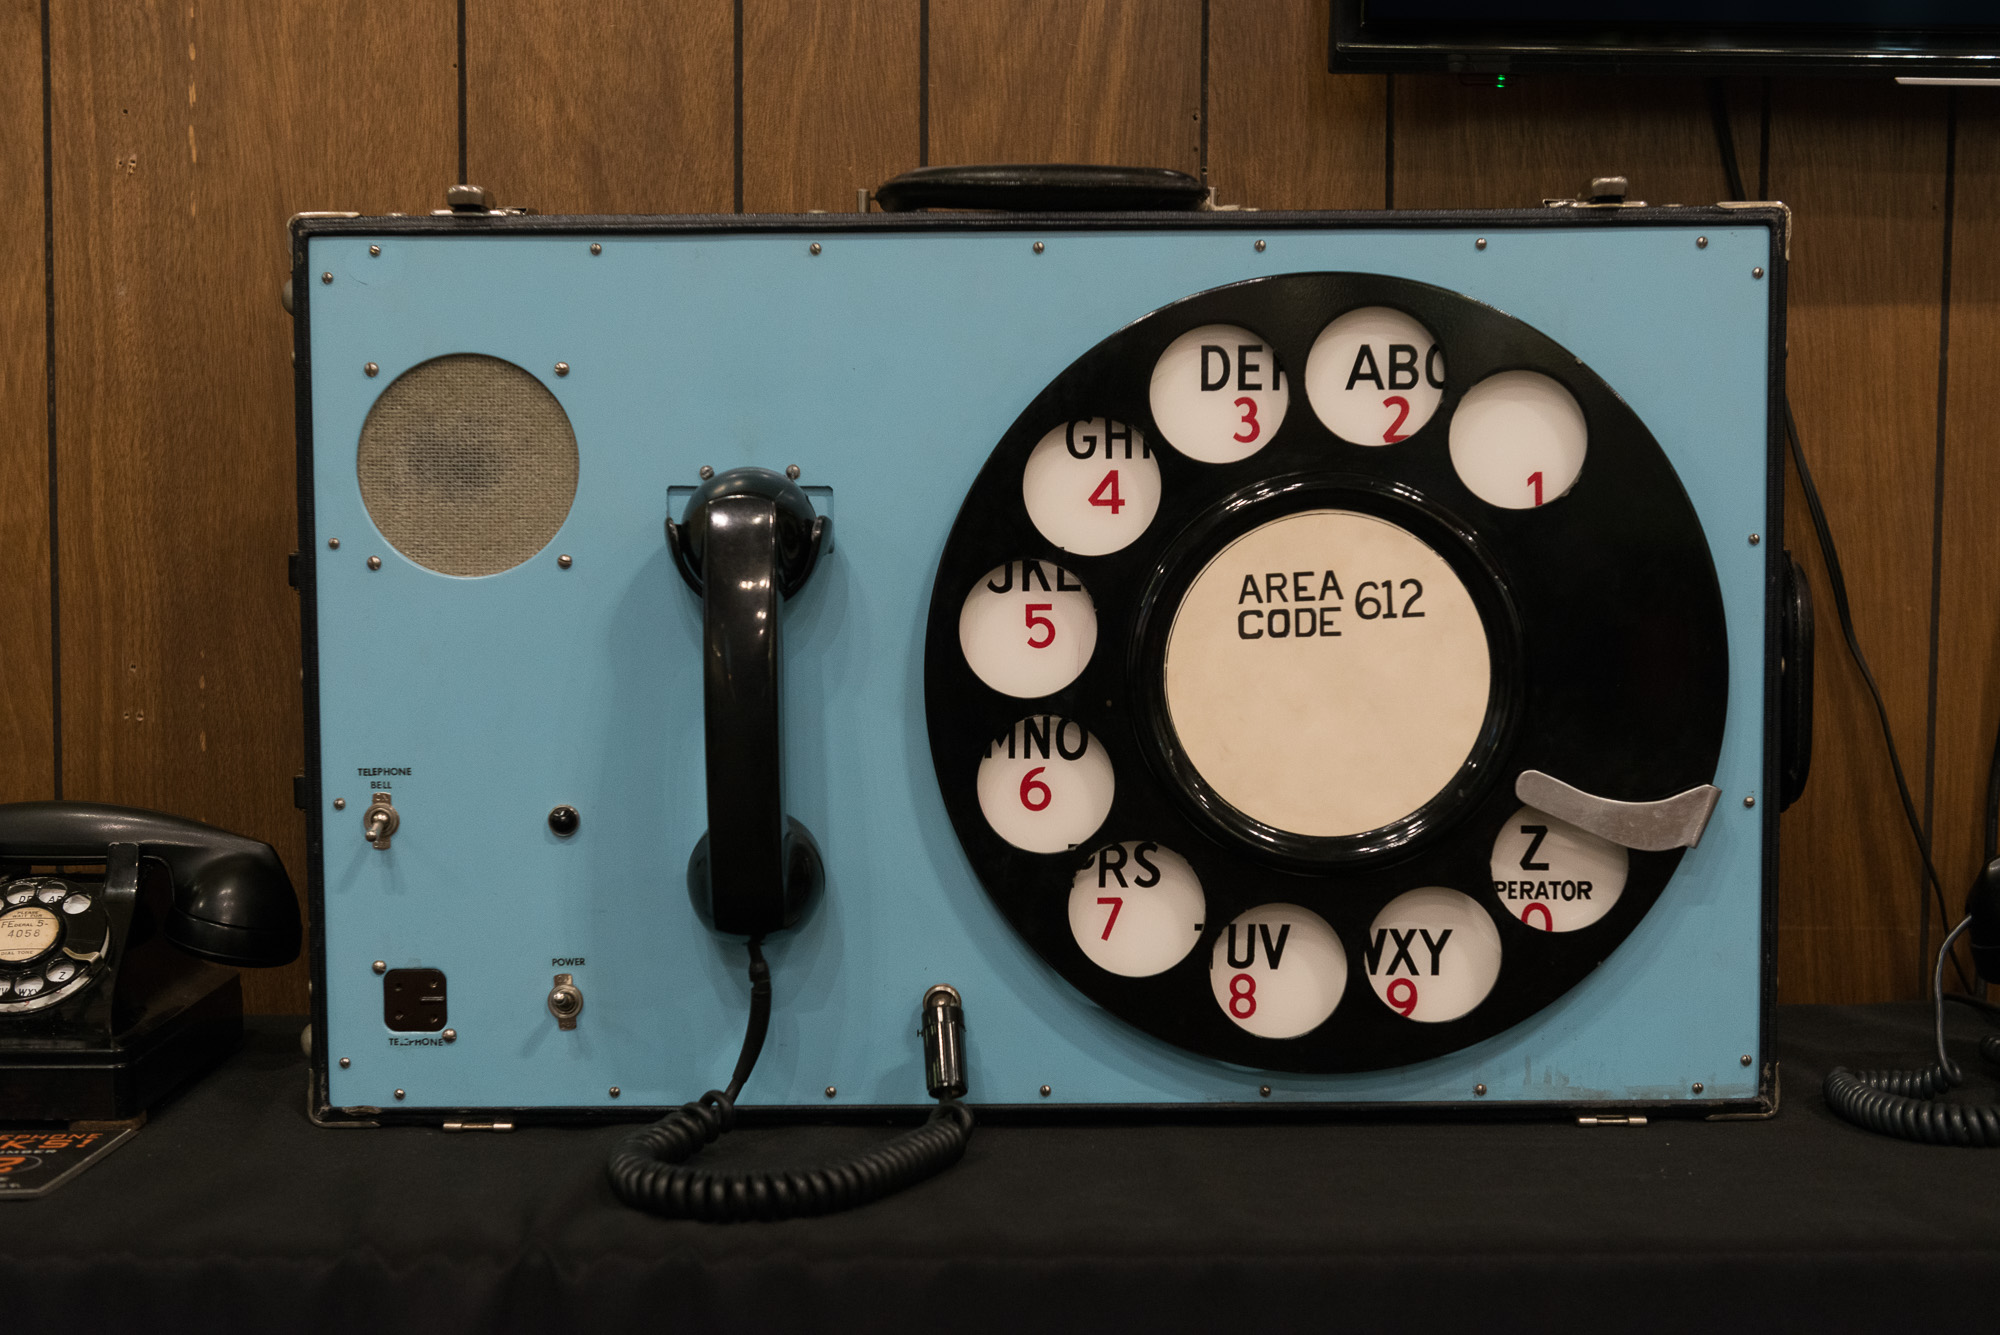 A large vintage suitcase telephone. It has a standard receiver, but the rotary dialer is much larger than normal. The whole unit is about the size of a small suitcase and has a handle on the top. It looks comically large.